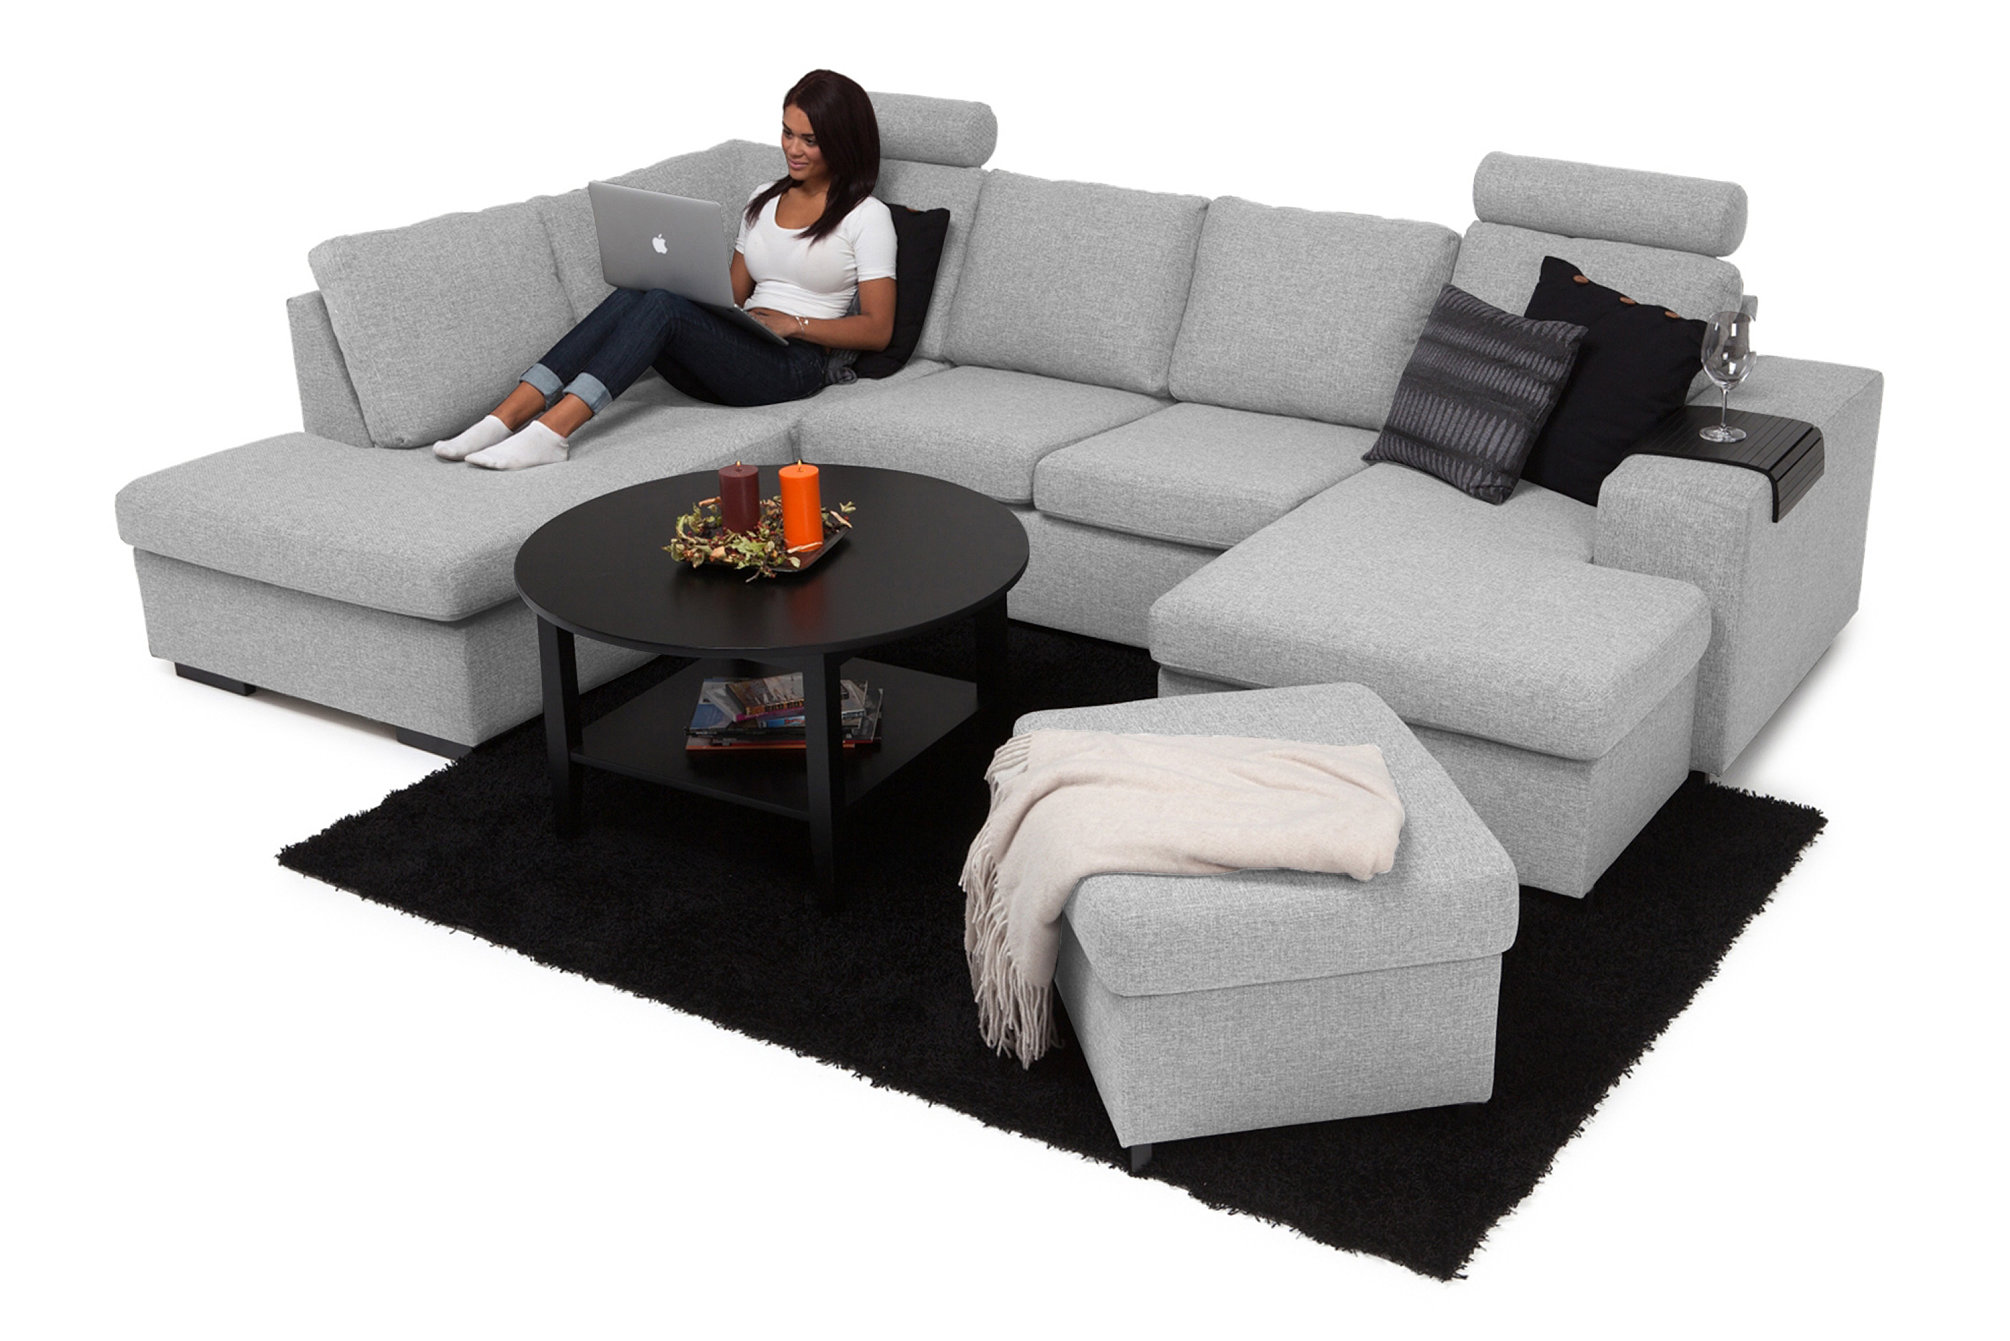 Innovative Friends Closer U Shaped Couch Slipcovers U Shaped Couch Restoration Hardware If Looking A U Shaped Sectional This Is One U Shaped Couch Reviews Bring Family houzz-03 U Shaped Couch